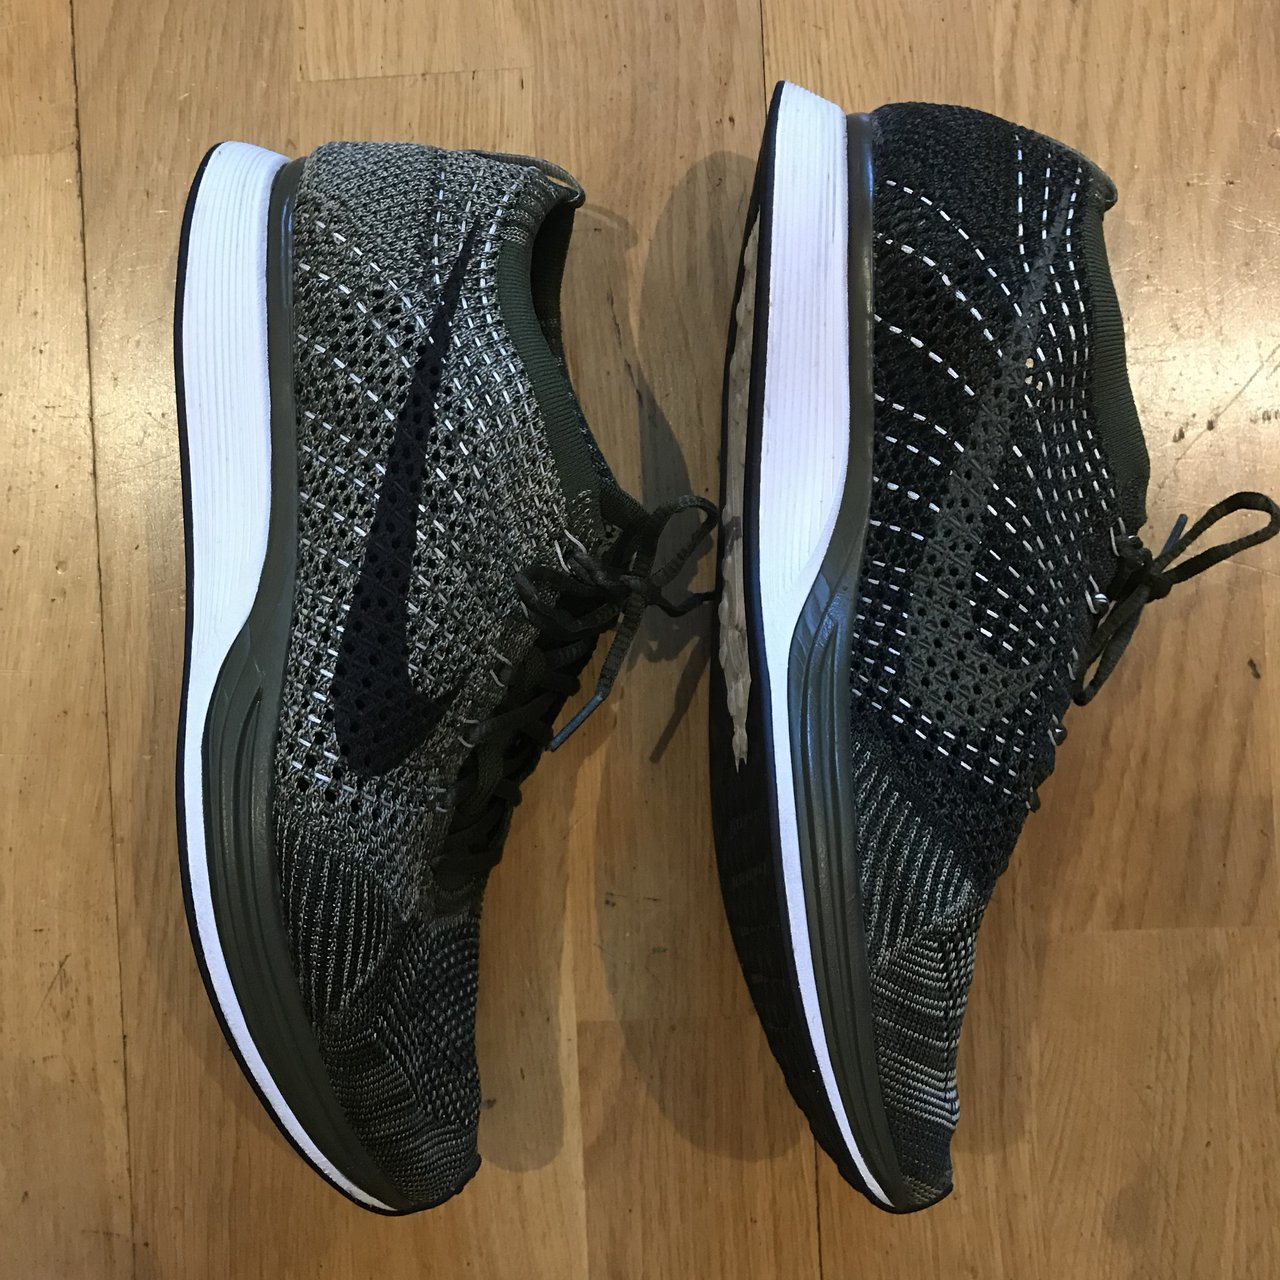 fe21fc6b0f59f NIKE FLYKNIT RACER - Army Green GREAT 9.5 10 Condition Only - Depop